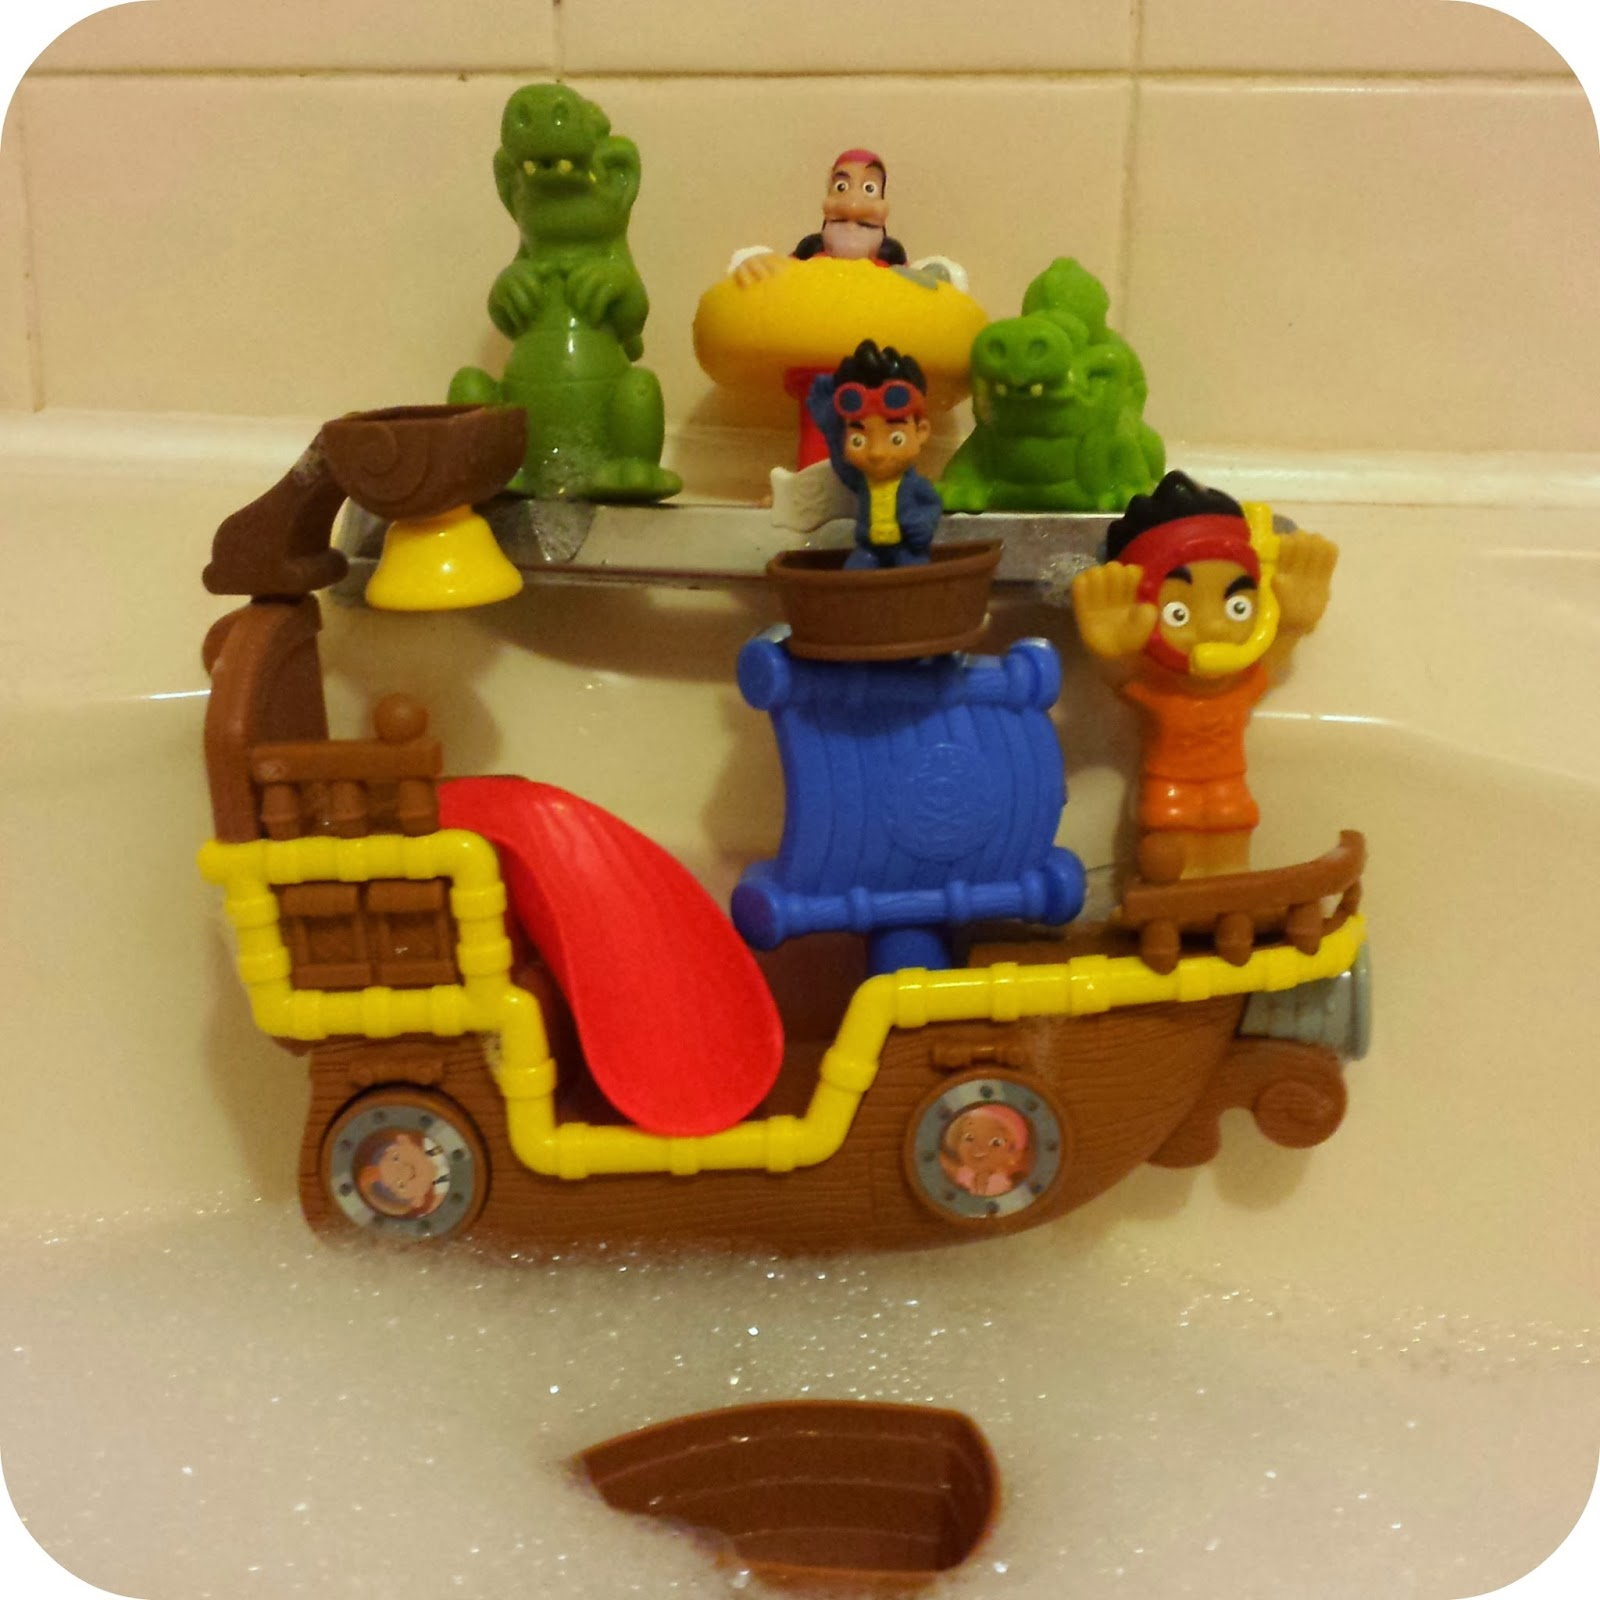 Modern Bath Toys For 2 Year Olds Collection - Bathroom and Shower ...